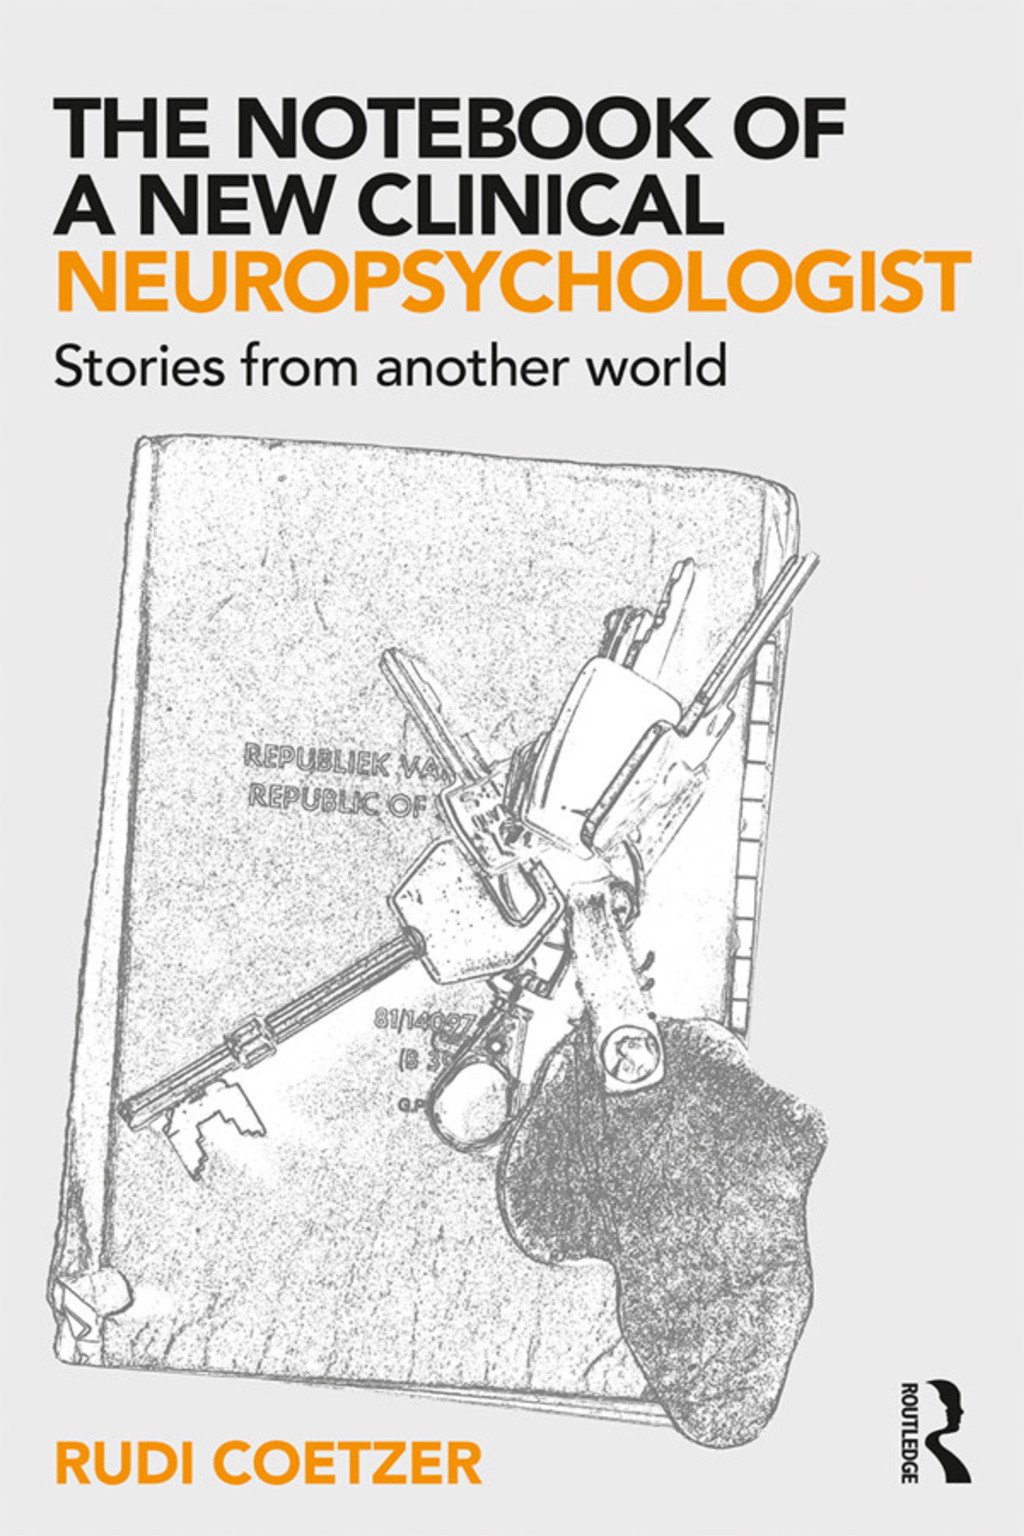 The Notebook of a New Clinical Neuropsychologist (eBook Rental)